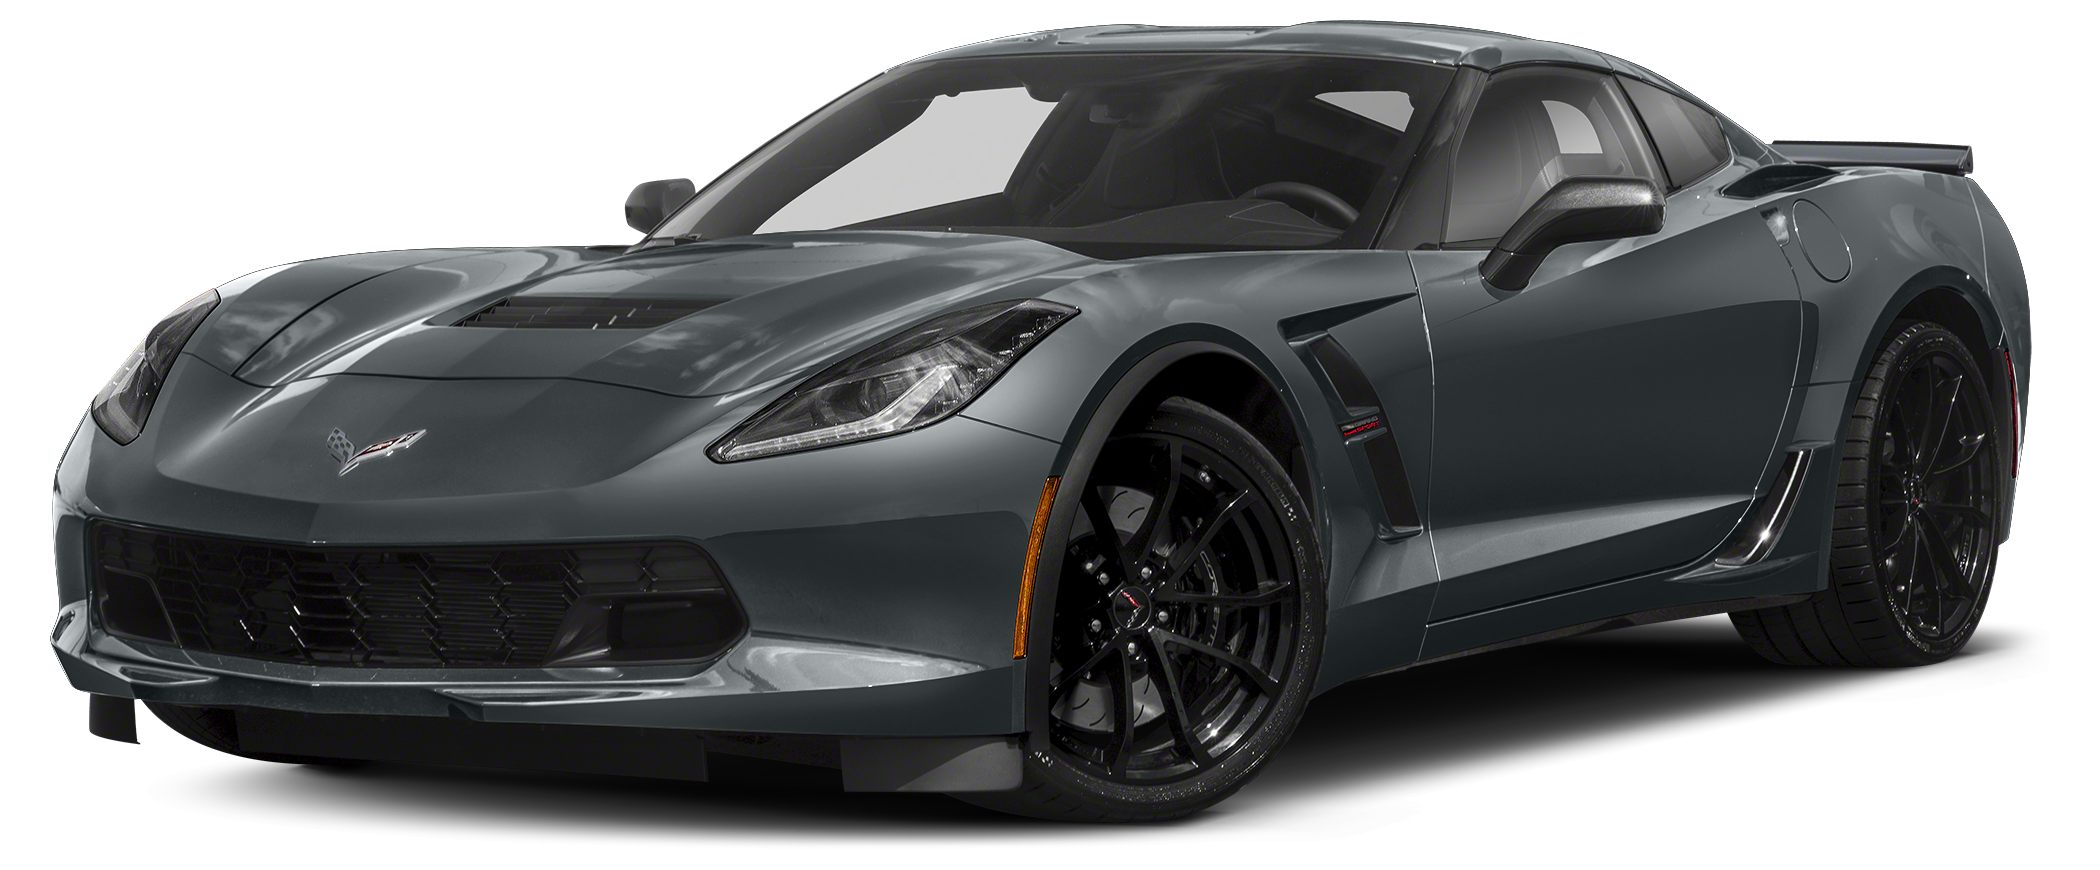 2018 Chevrolet Corvette Grand Sport Miles 0Color Watkins Glen Gray Metallic Stock CO8020 VIN